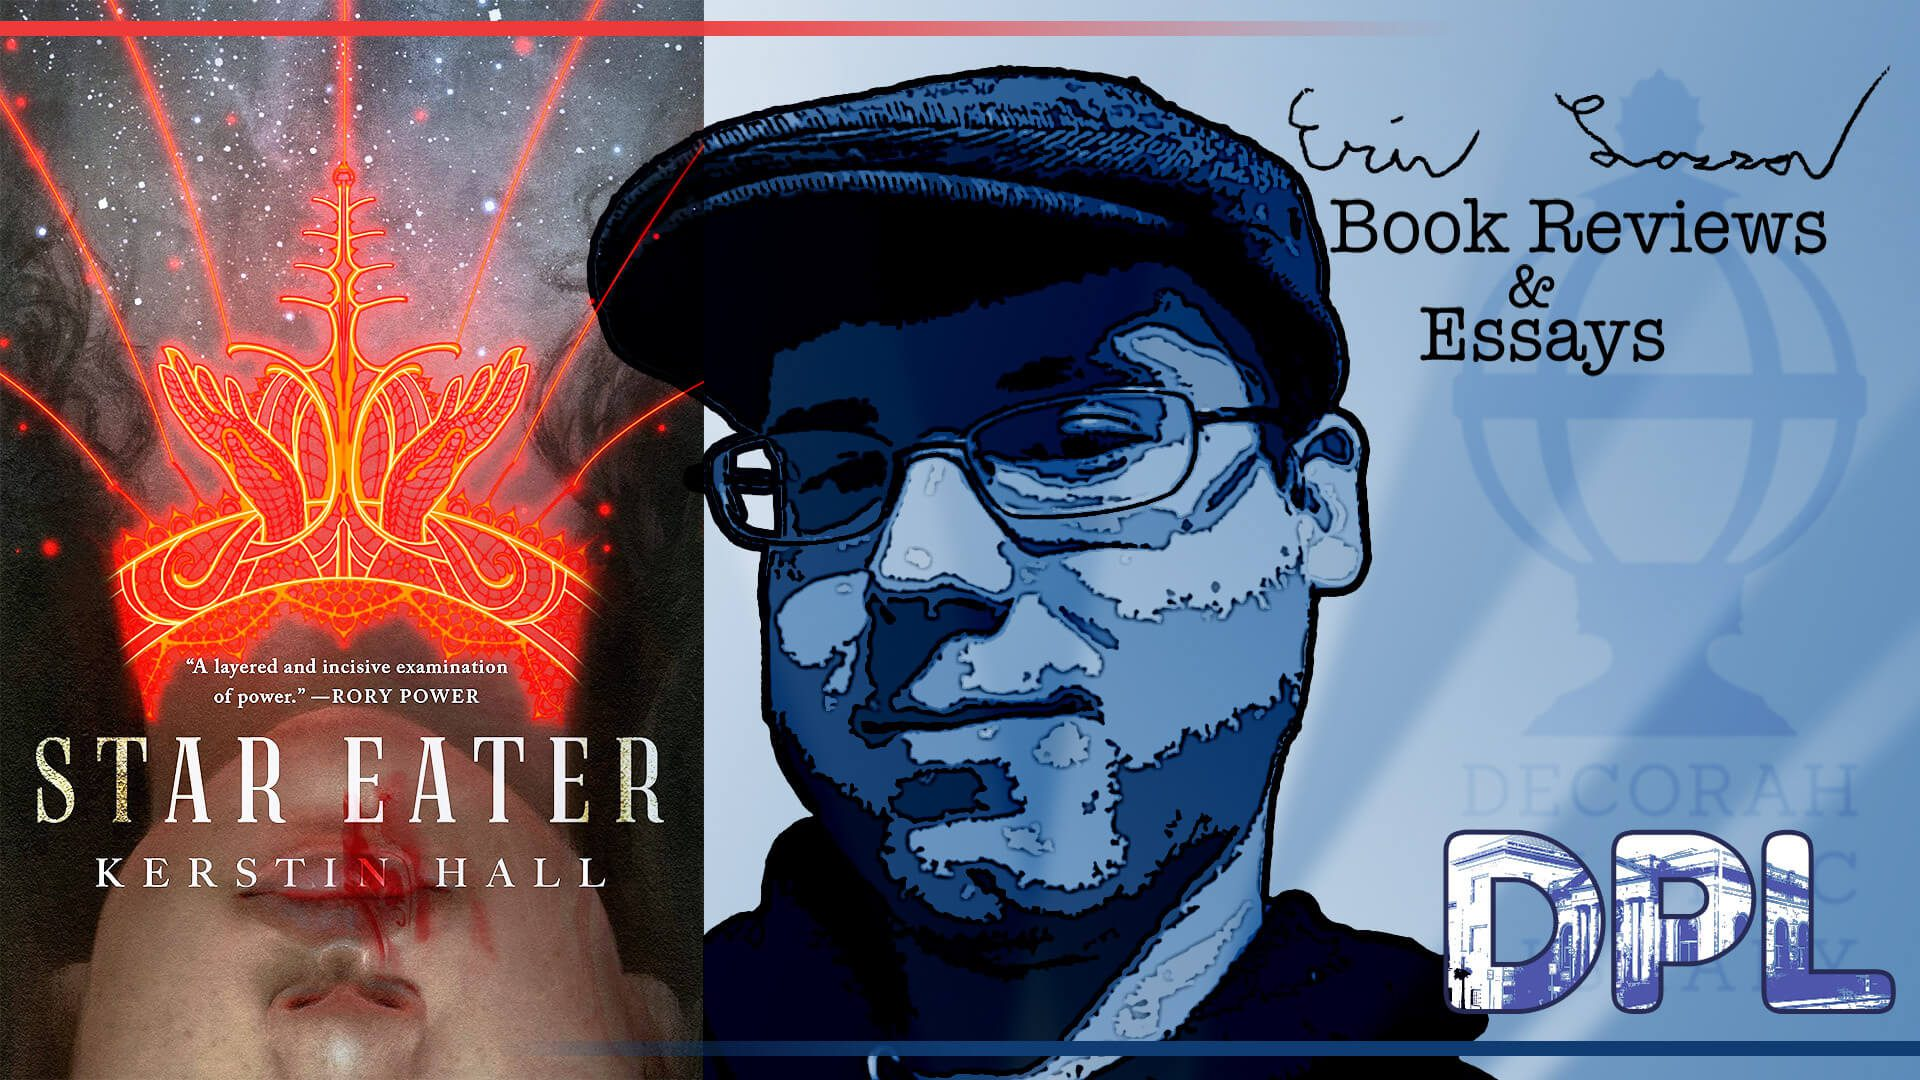 Erin's Book Review of Star Eater